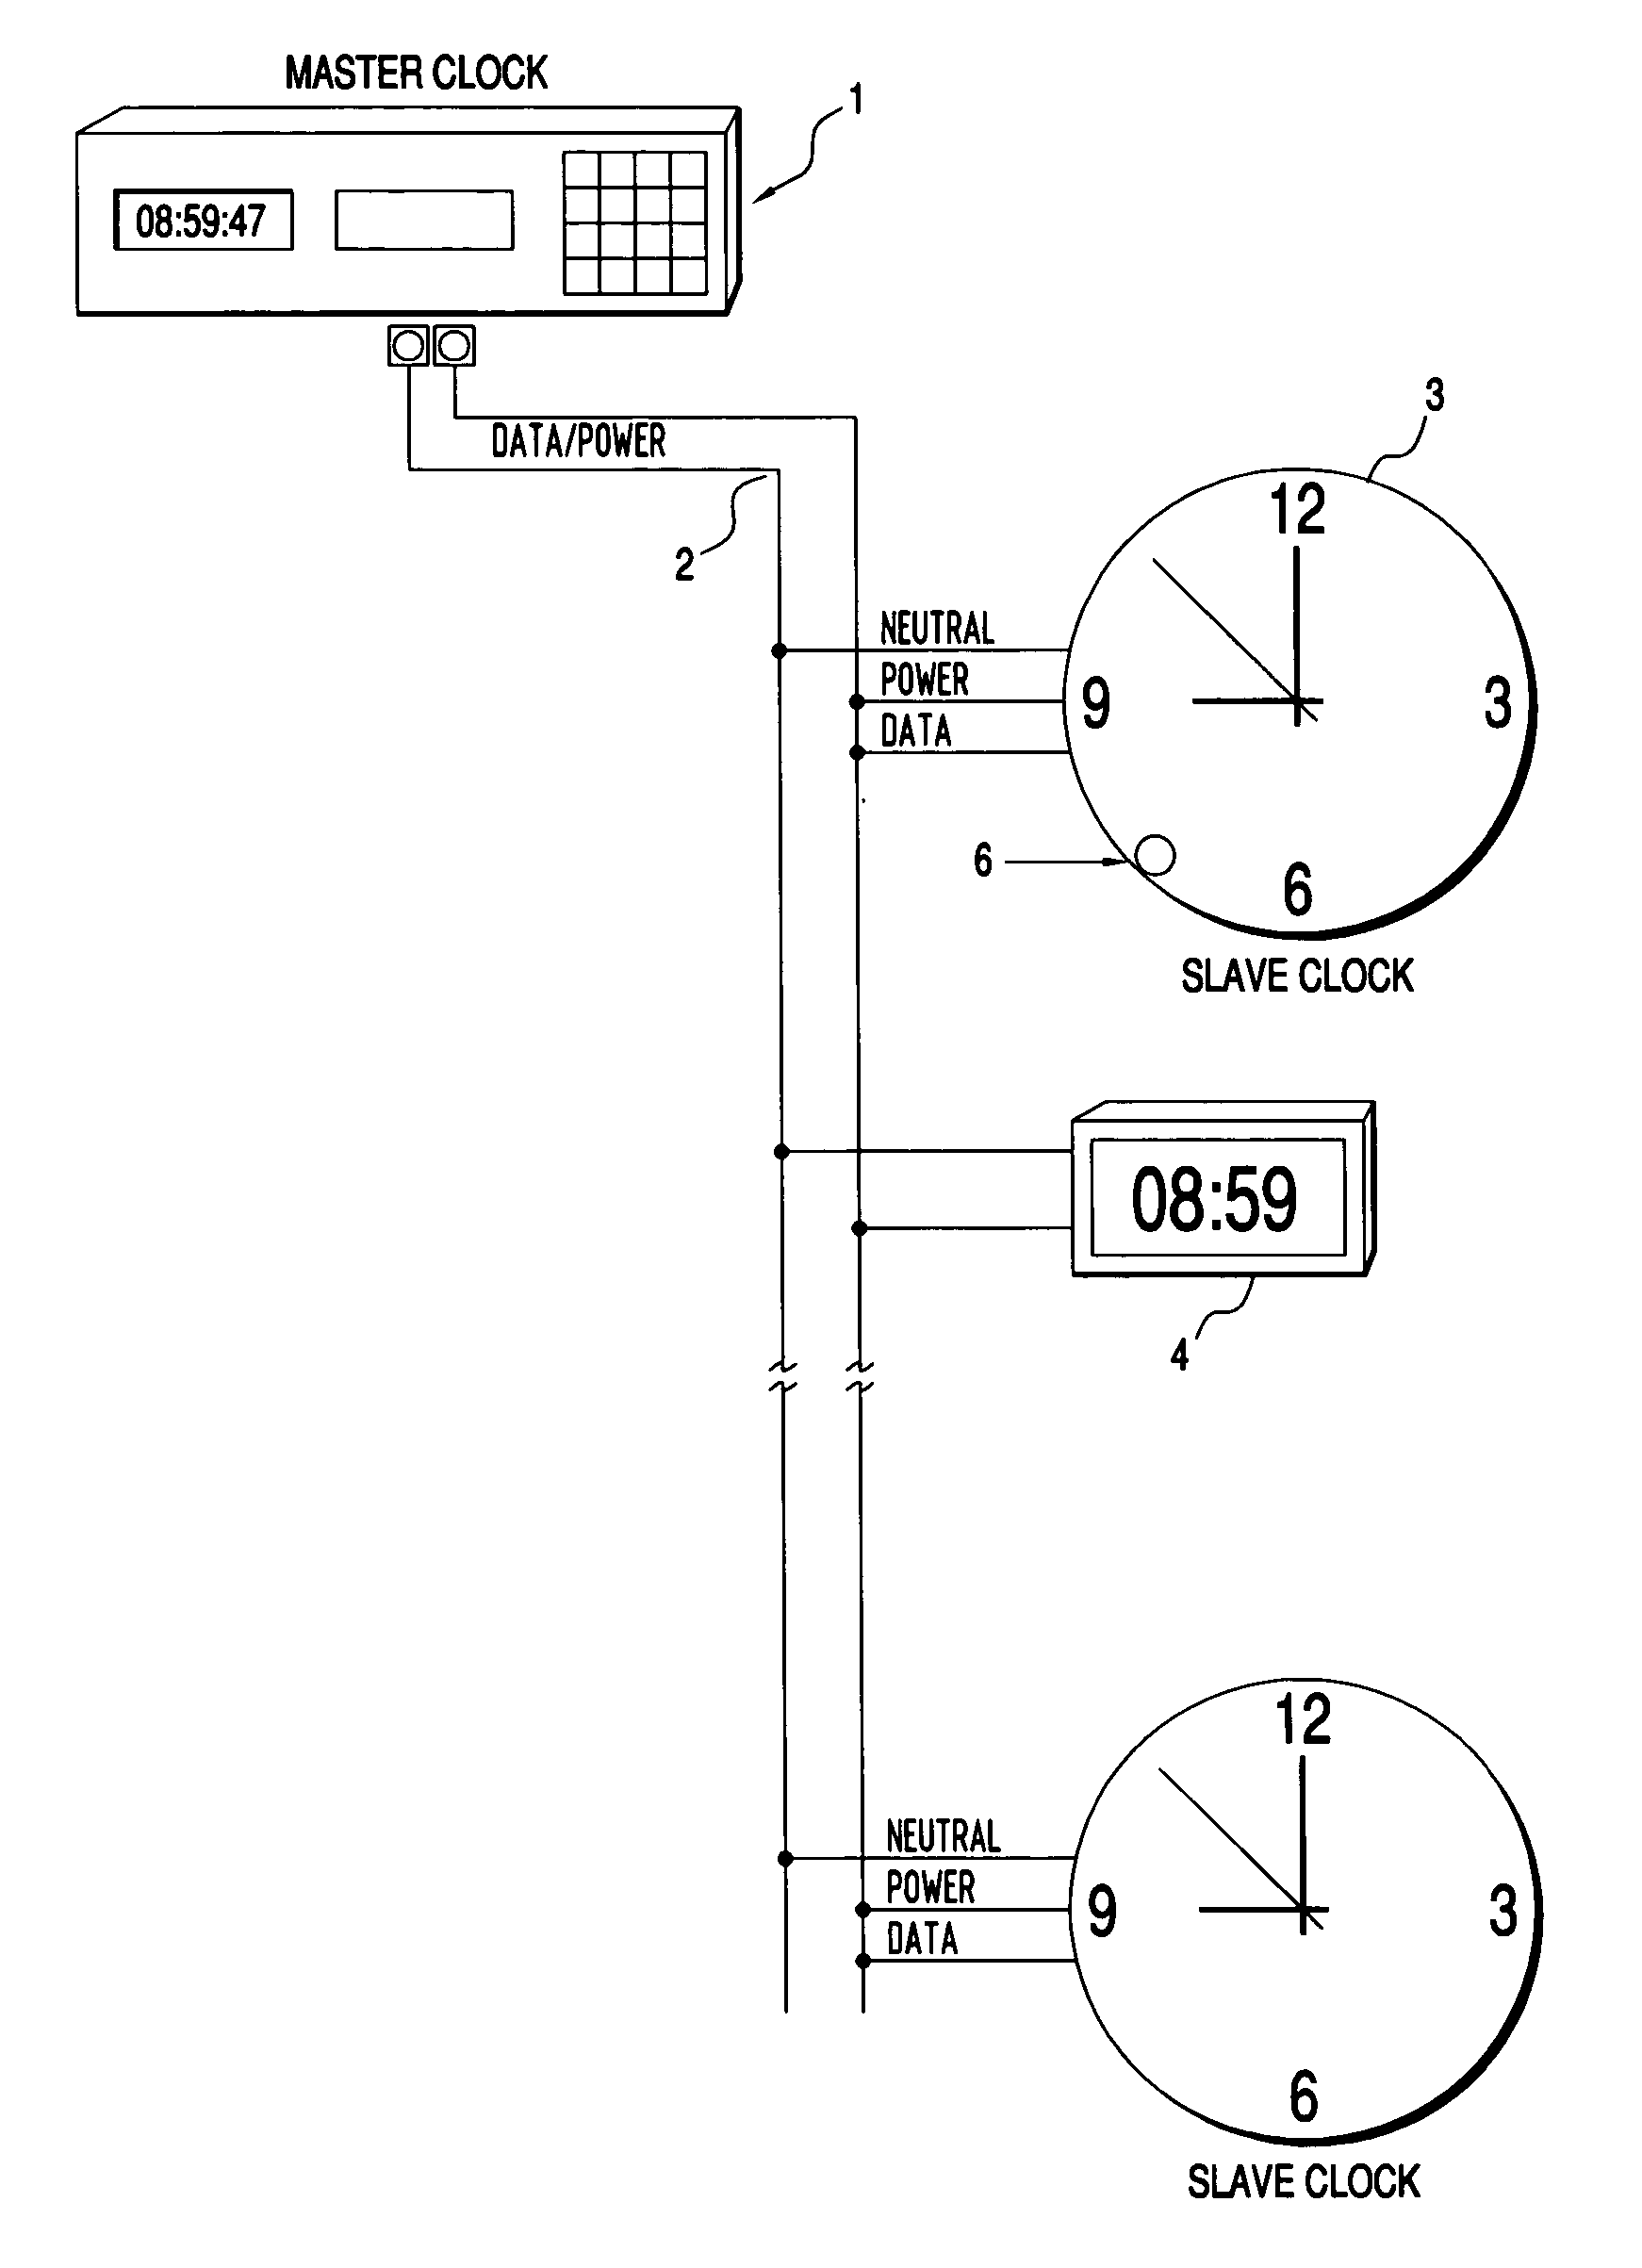 US20040165480A1 20040826 D00000 patent us20040165480 master slave clock system with automatic master clock system wiring diagram at reclaimingppi.co